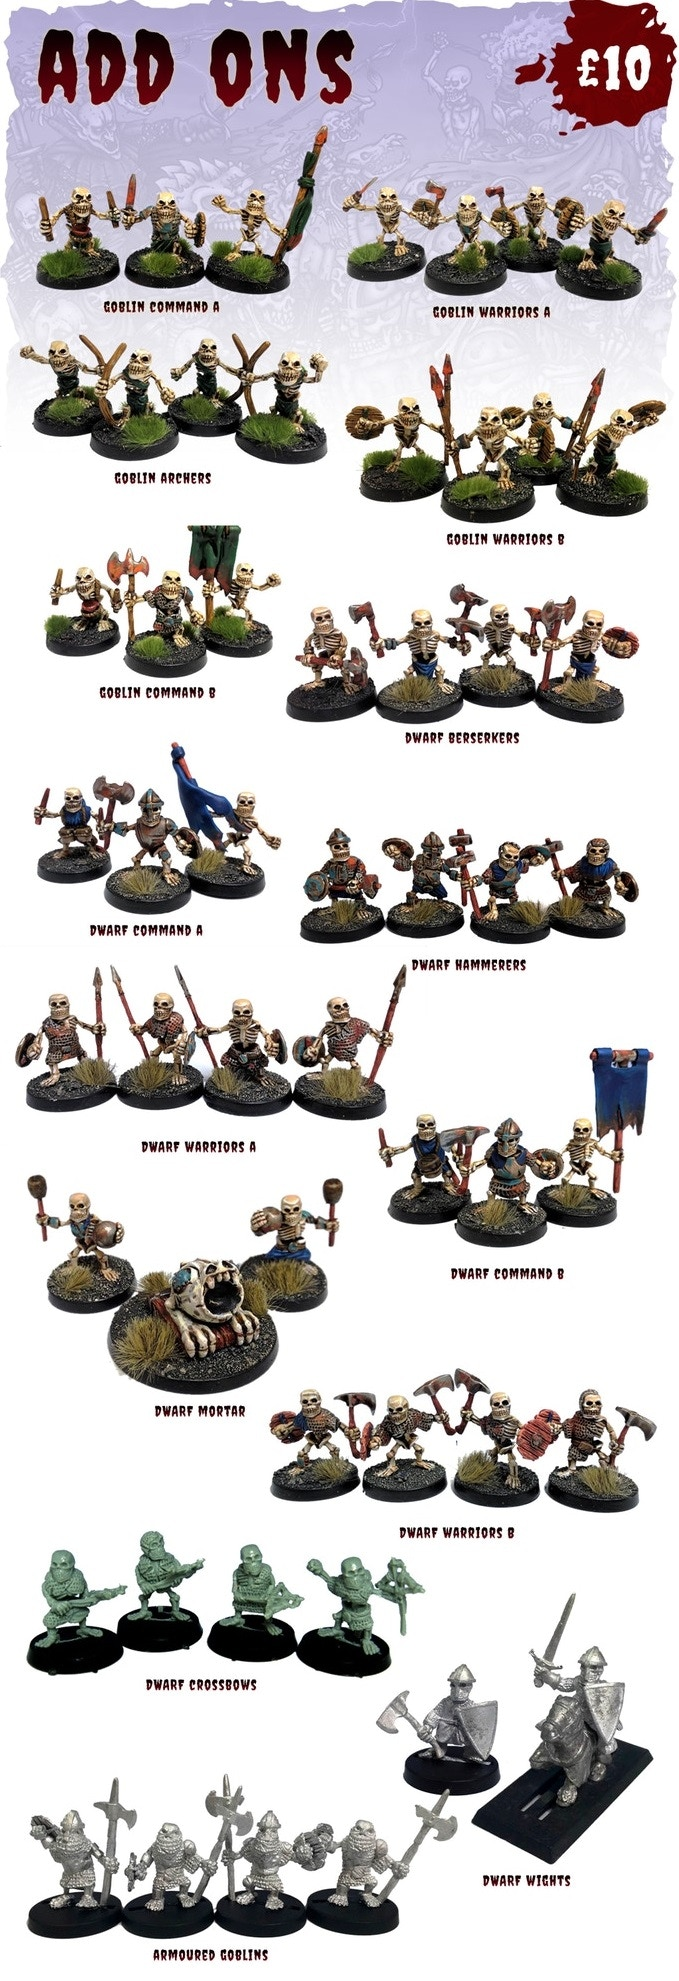 Dwarf Mortar and Dwarf Wights are metal. Price is £10 per set.